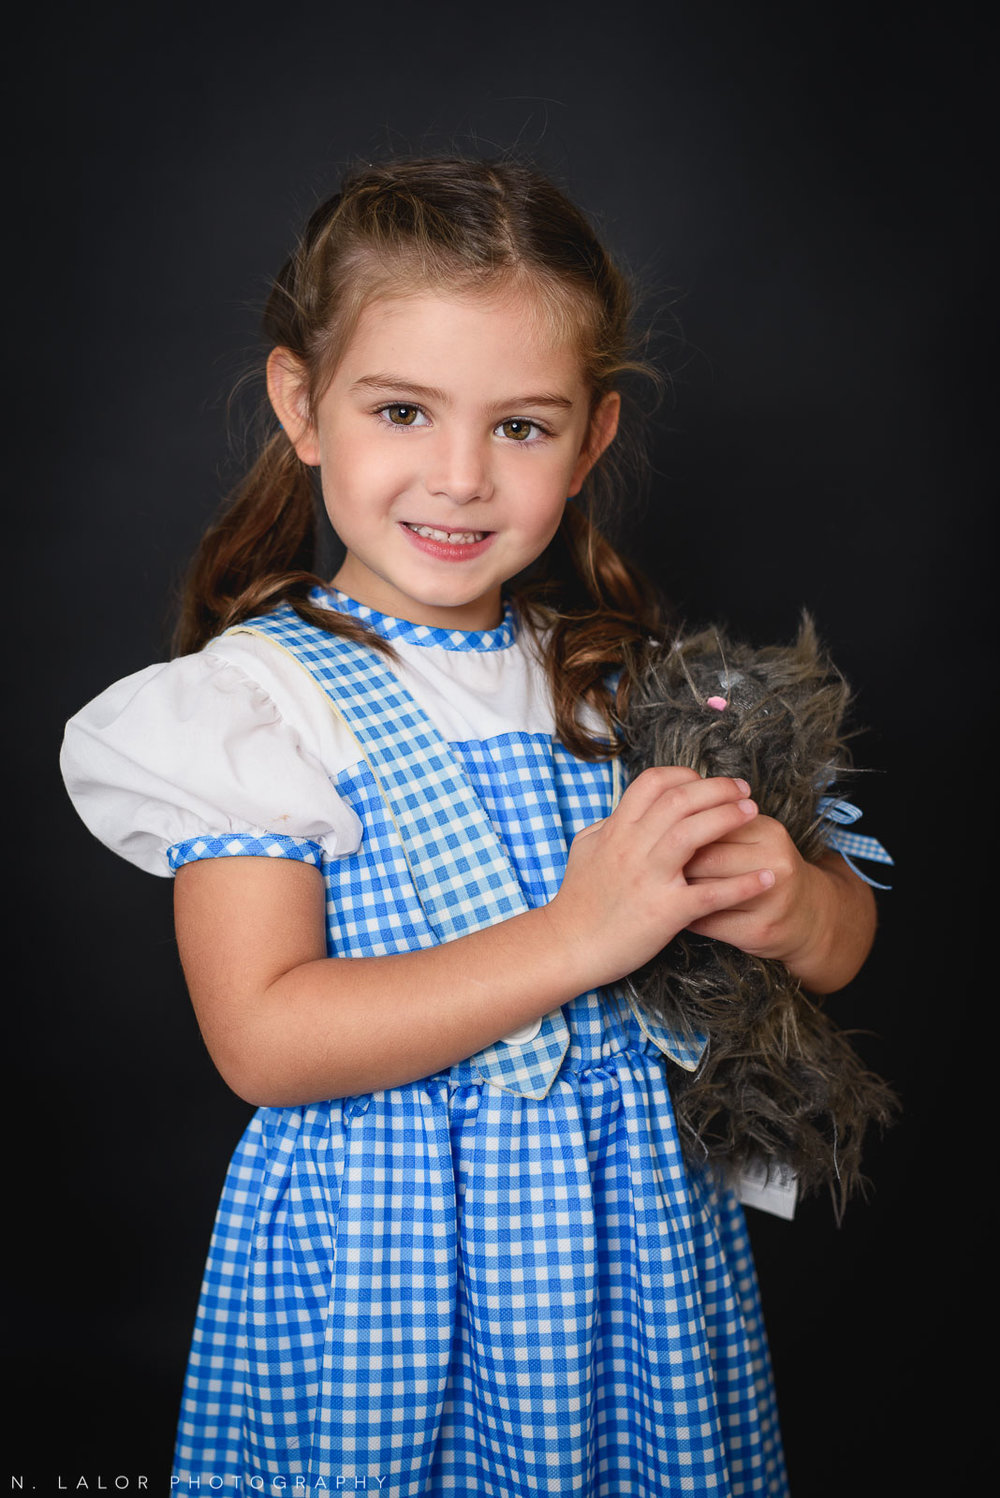 Dorothy. PJ Masks. Kids Halloween costume portrait by N. Lalor Photography in Greenwich, Connecticut.